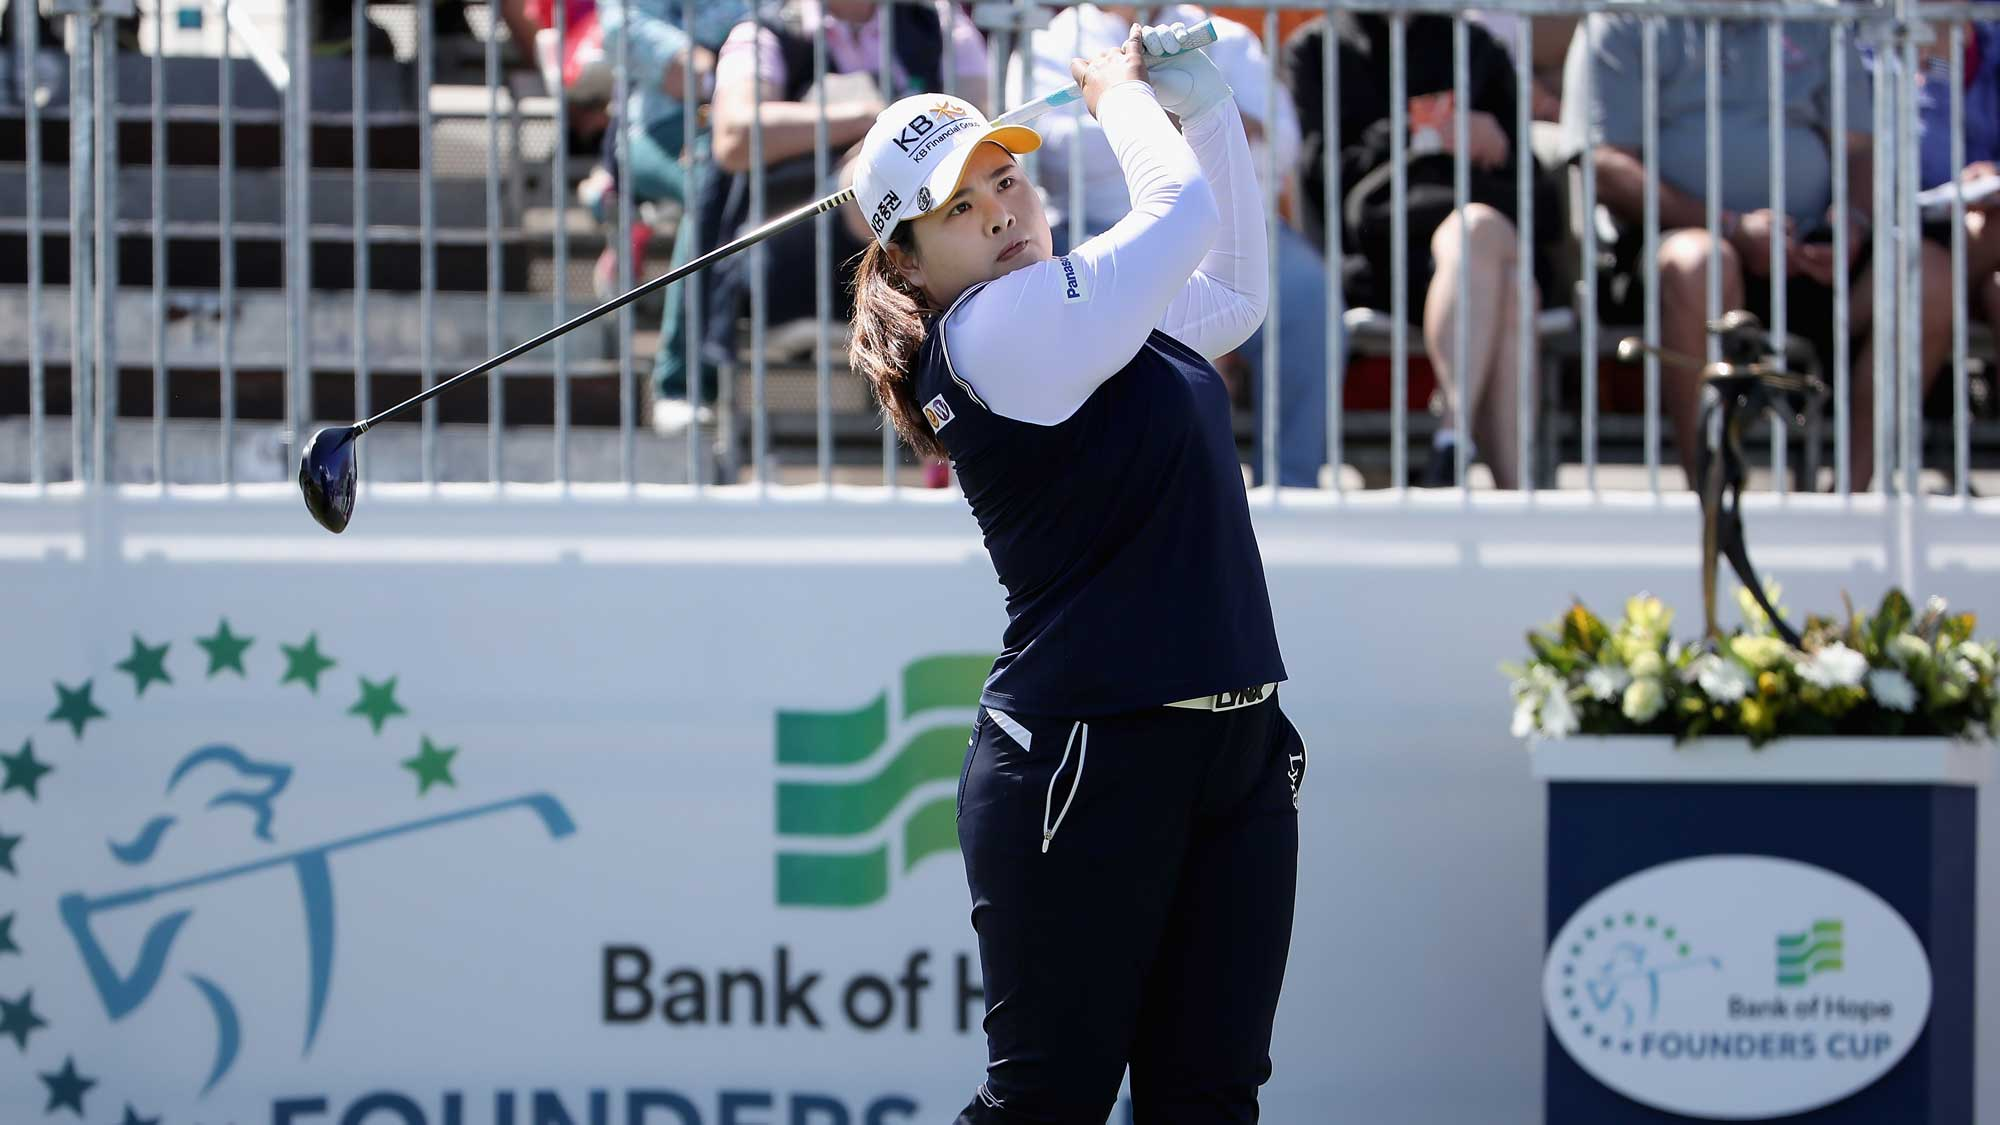 Inbee Park Tees Off Sunday at the Founders Cup